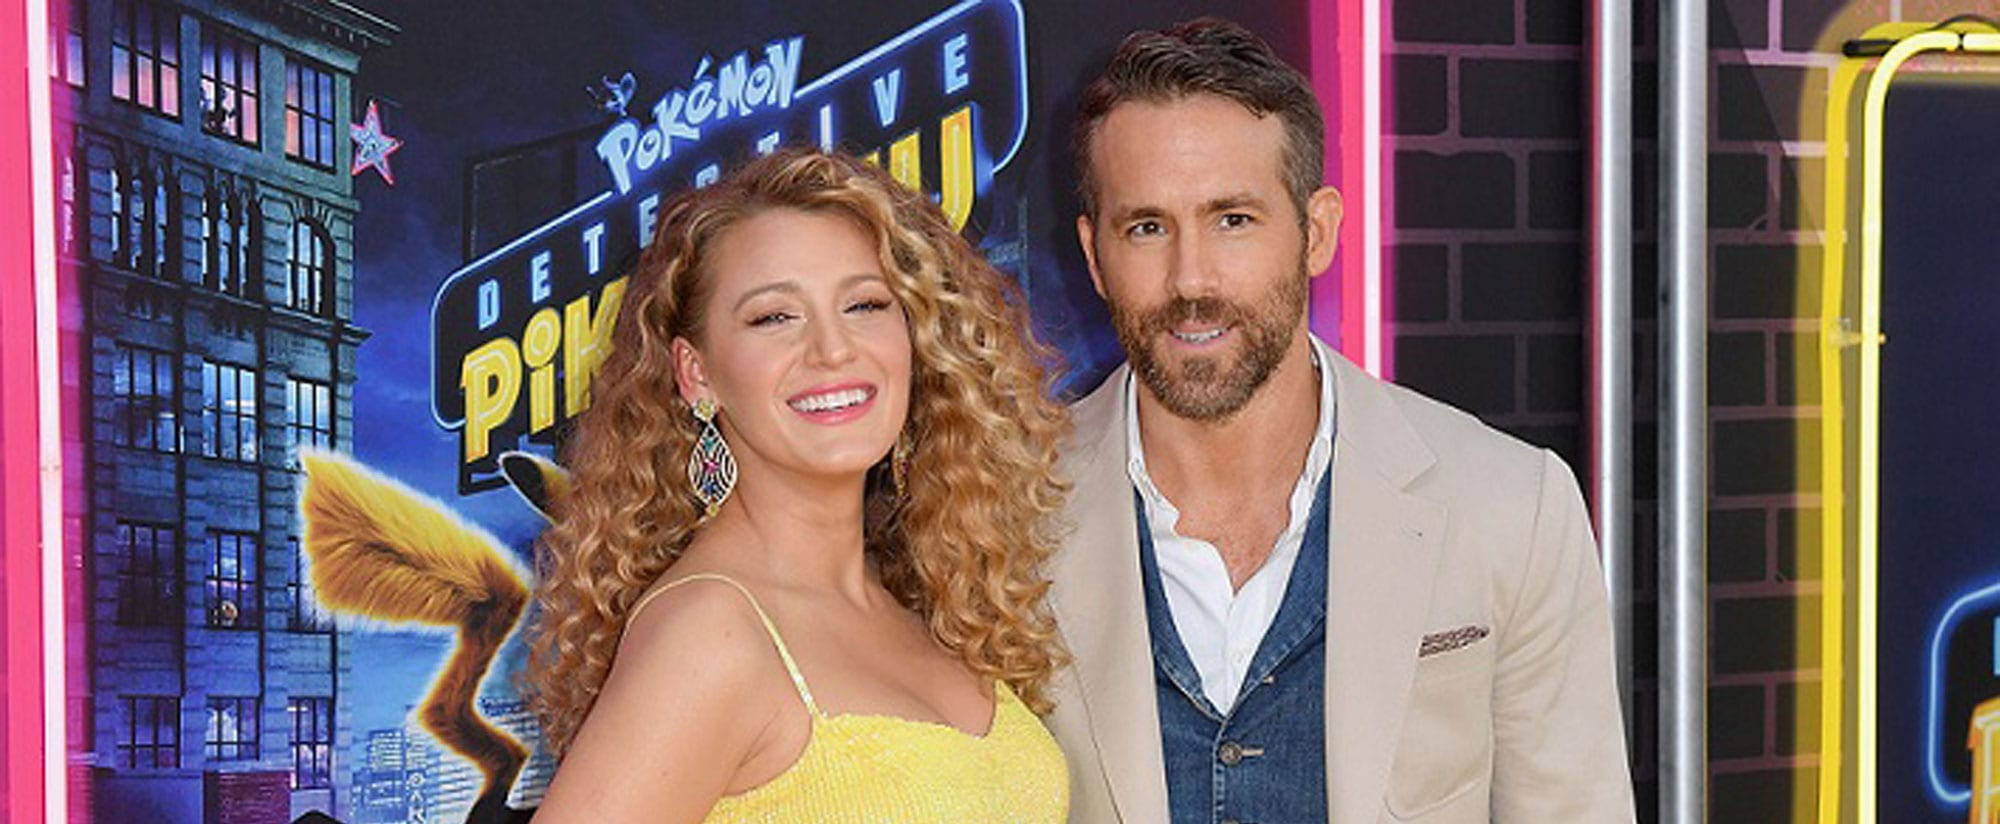 בלייק לייבלי, בלייק ריי ריינולדס blake-lively-ryan-reynolds1